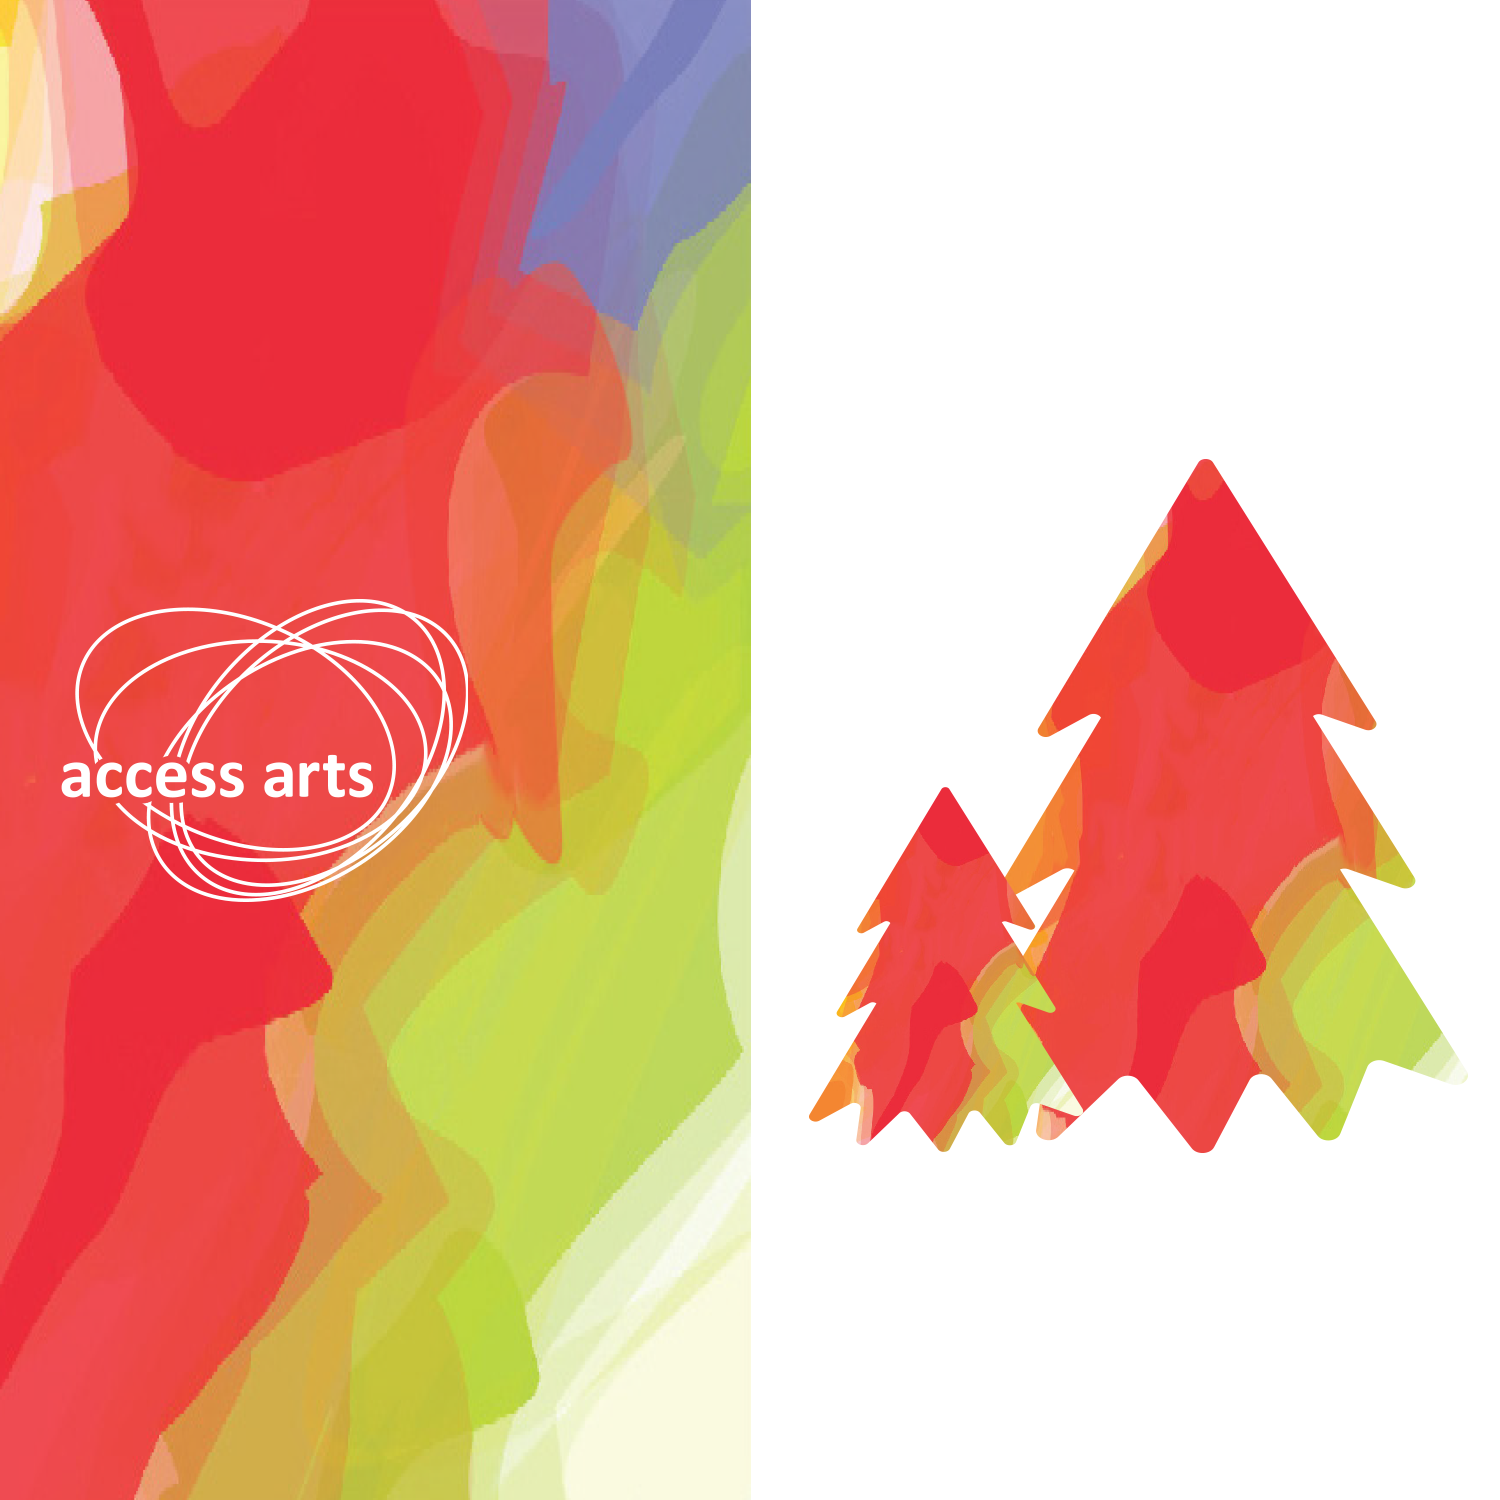 Multi-coloured Christmas trees and access arts logo